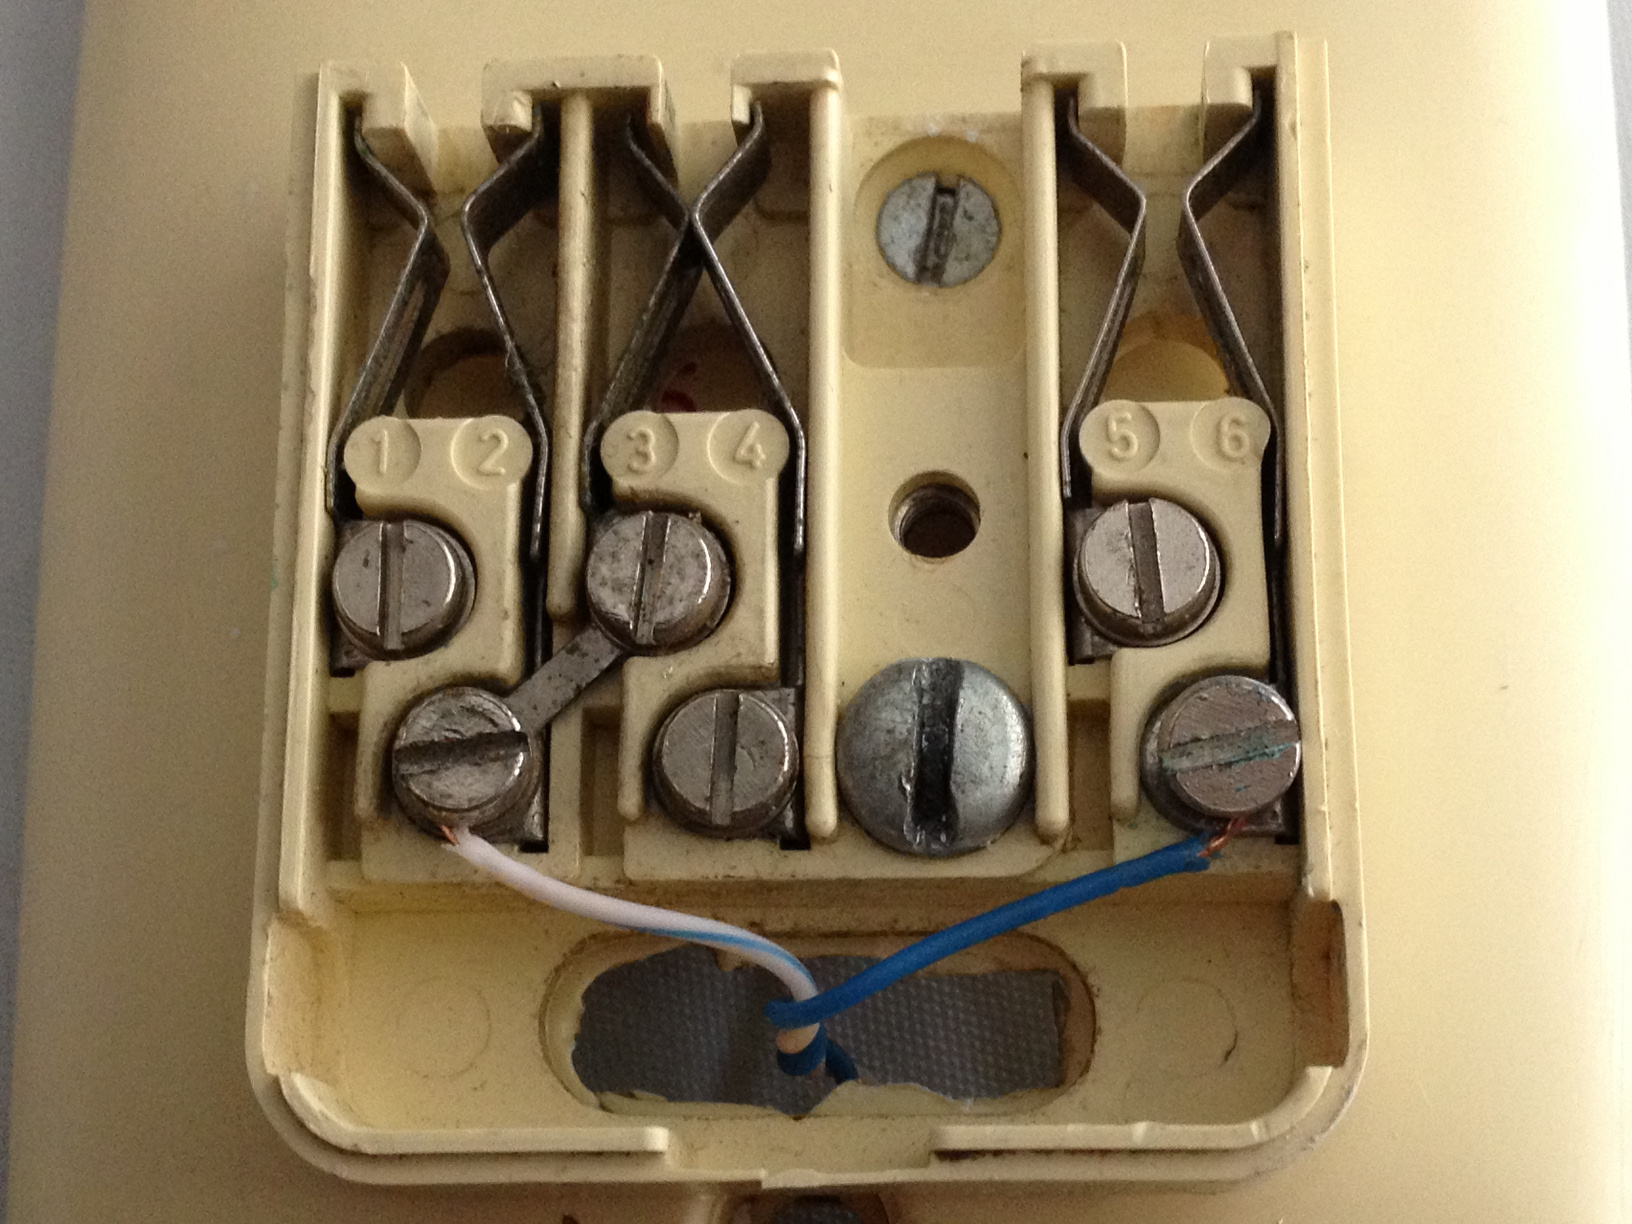 phone wiring australia wiring diagram meta how to wire a phone socket australia wiring a phone jack australia [ 1632 x 1224 Pixel ]